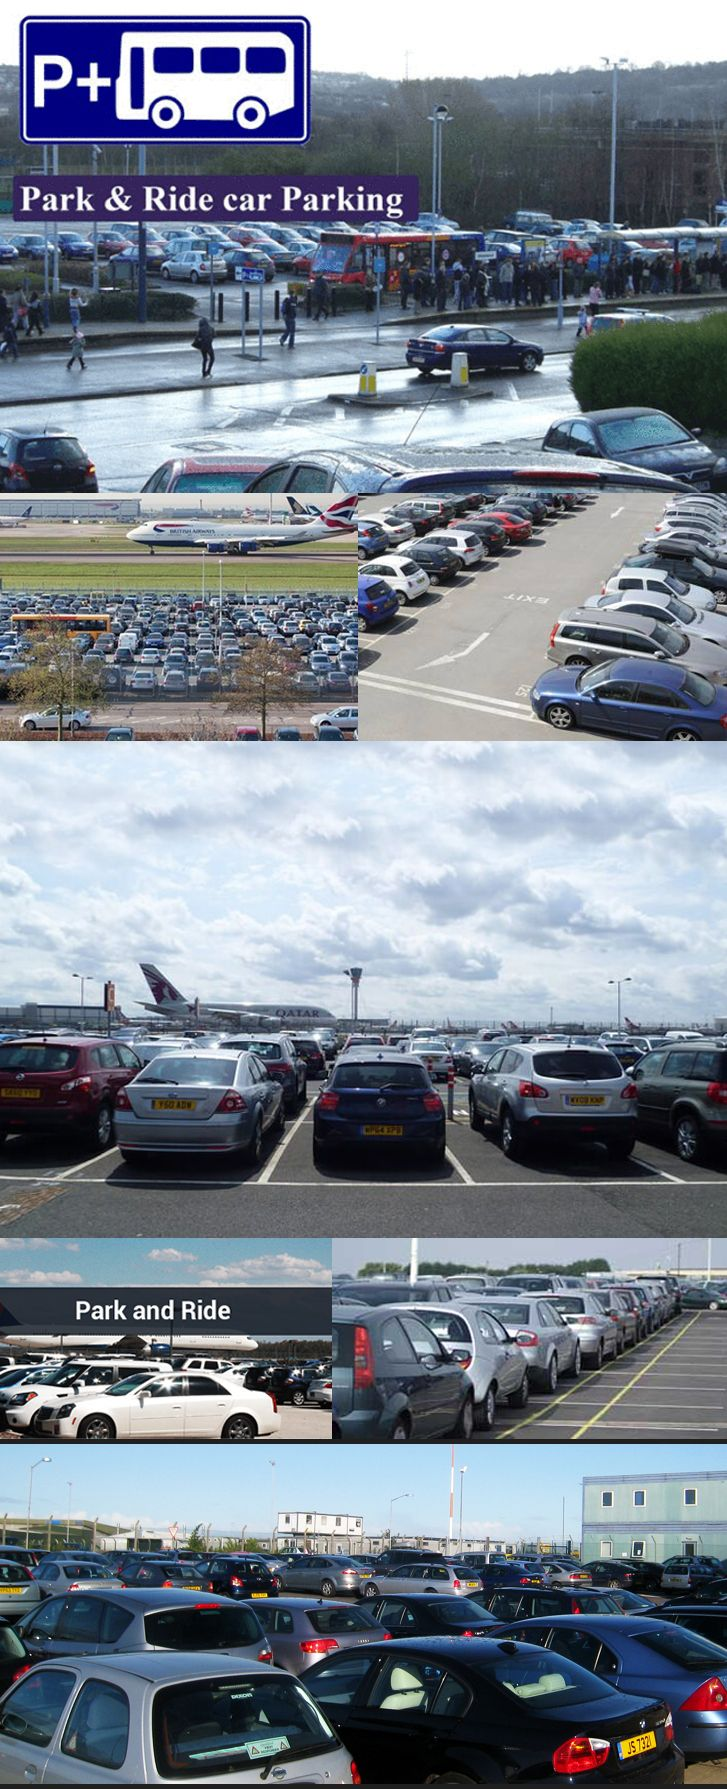 Heathrow Park And Ride Parking Looking For A Park And Ride Parking